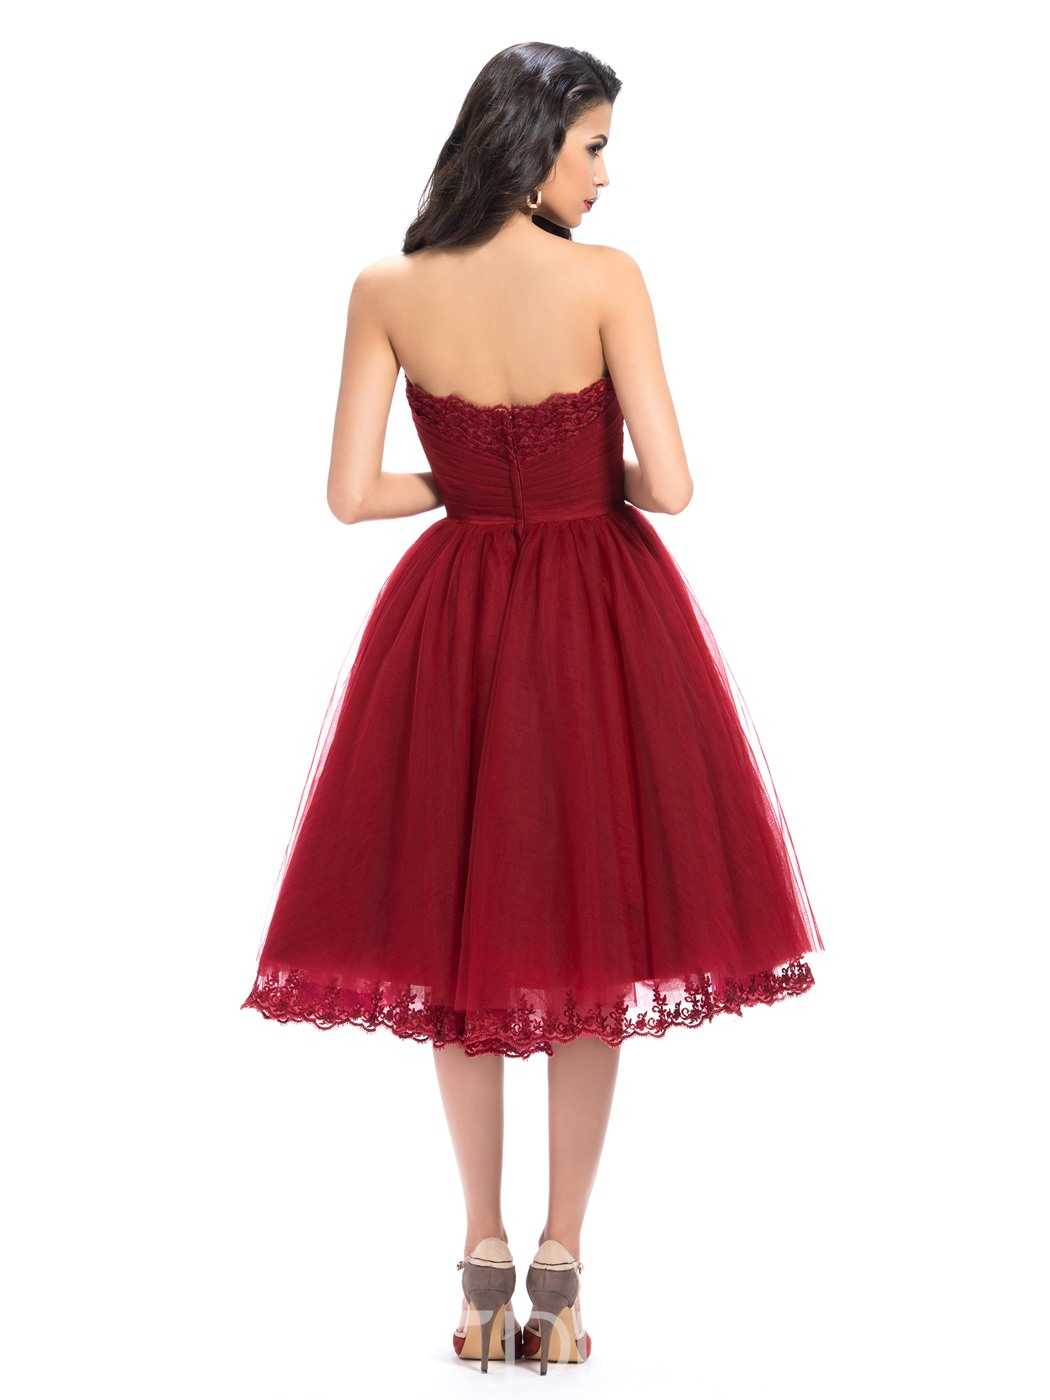 Glamour Strapless Appliques A-Line Tea-Length Homecoming Dress